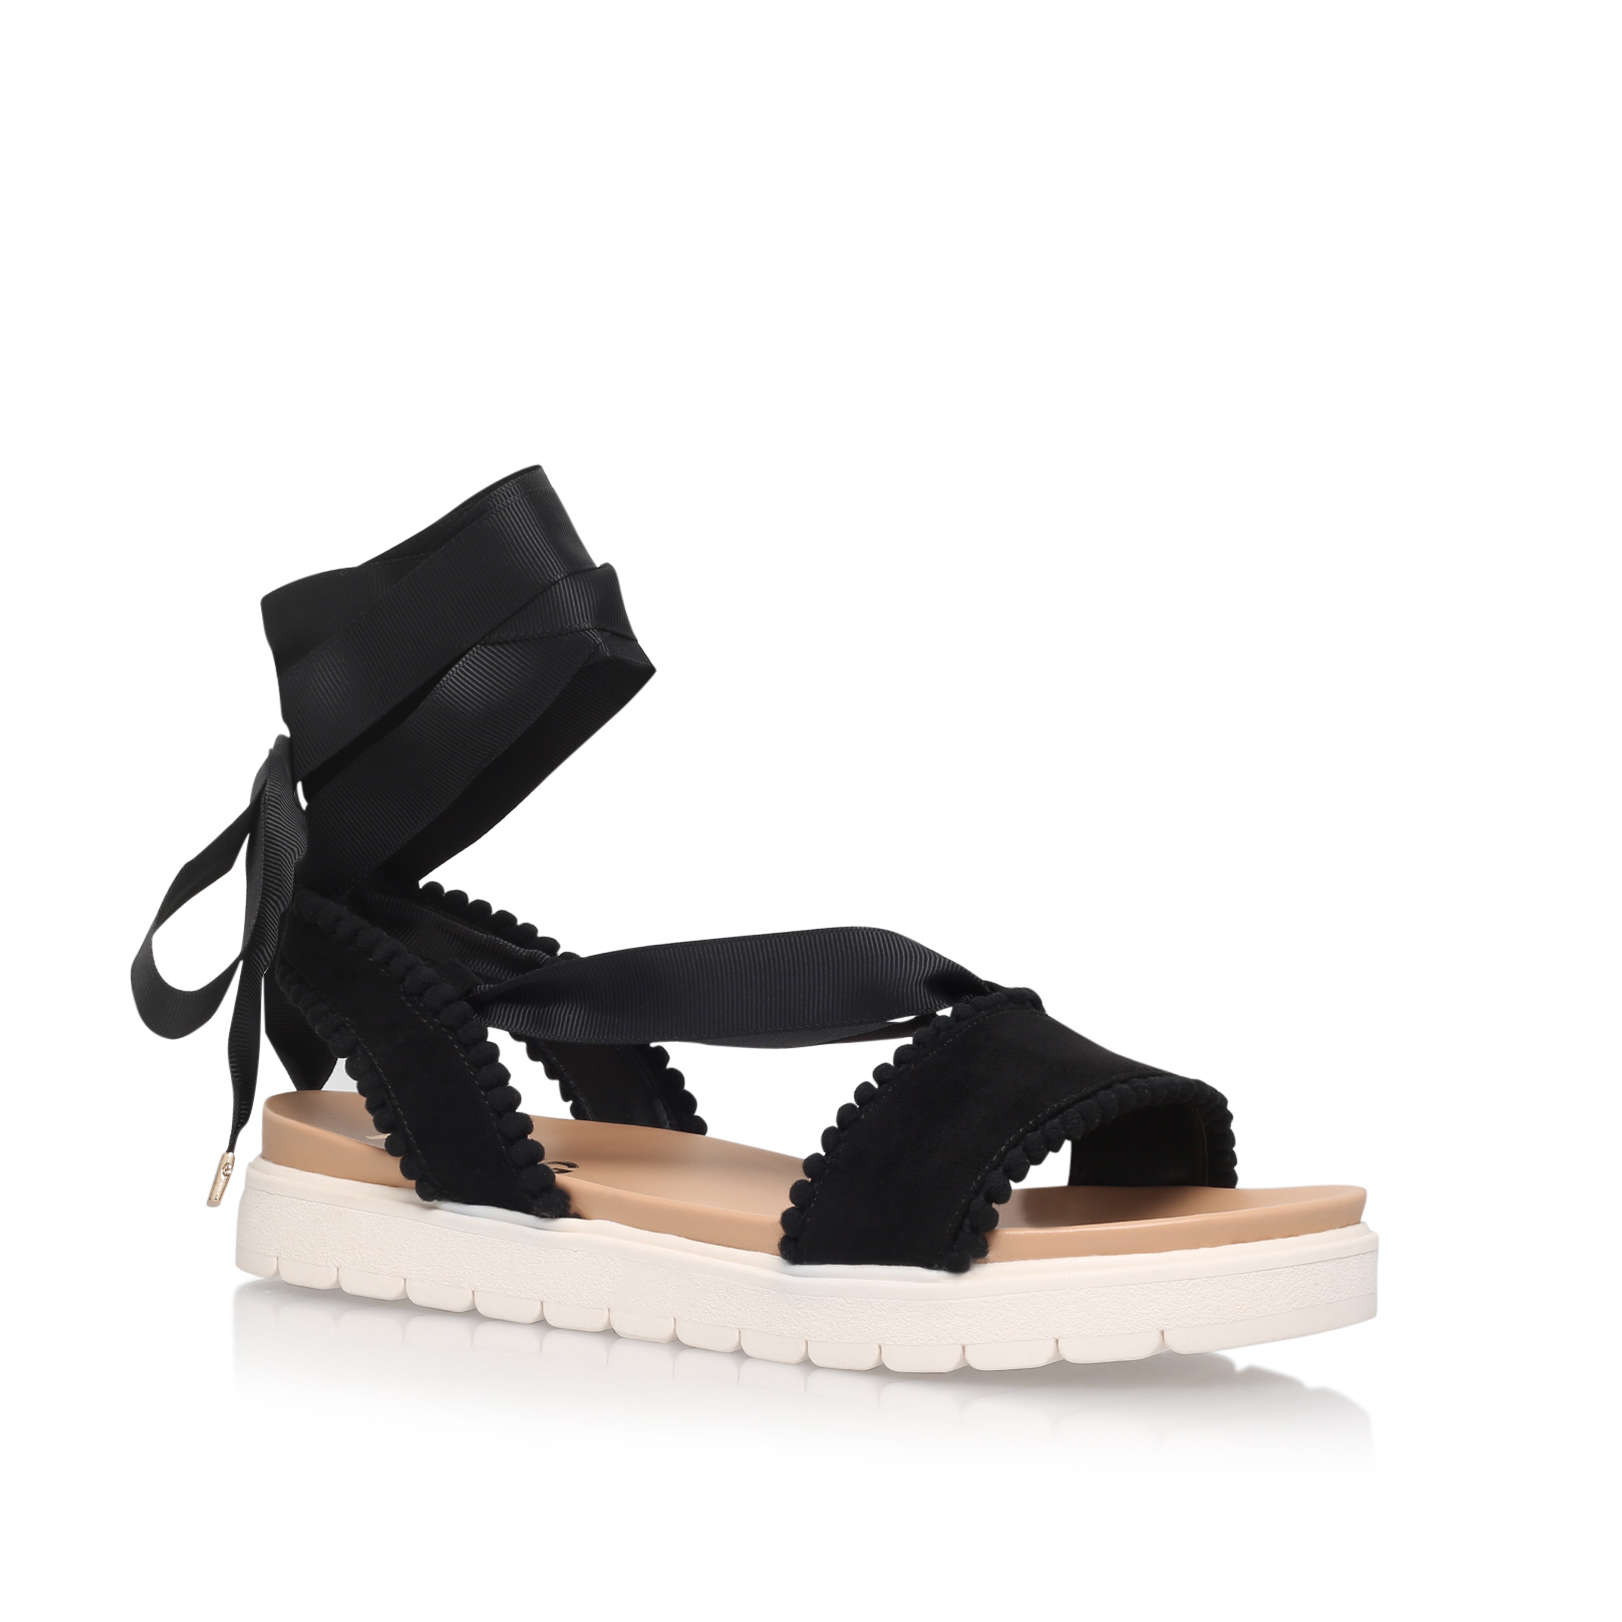 Cheap Sale Genuine Outlet 2018 New Miss KG Women's Dakota Sandals Discount Cheapest Price Outlet Best Prices mDFeGFM4